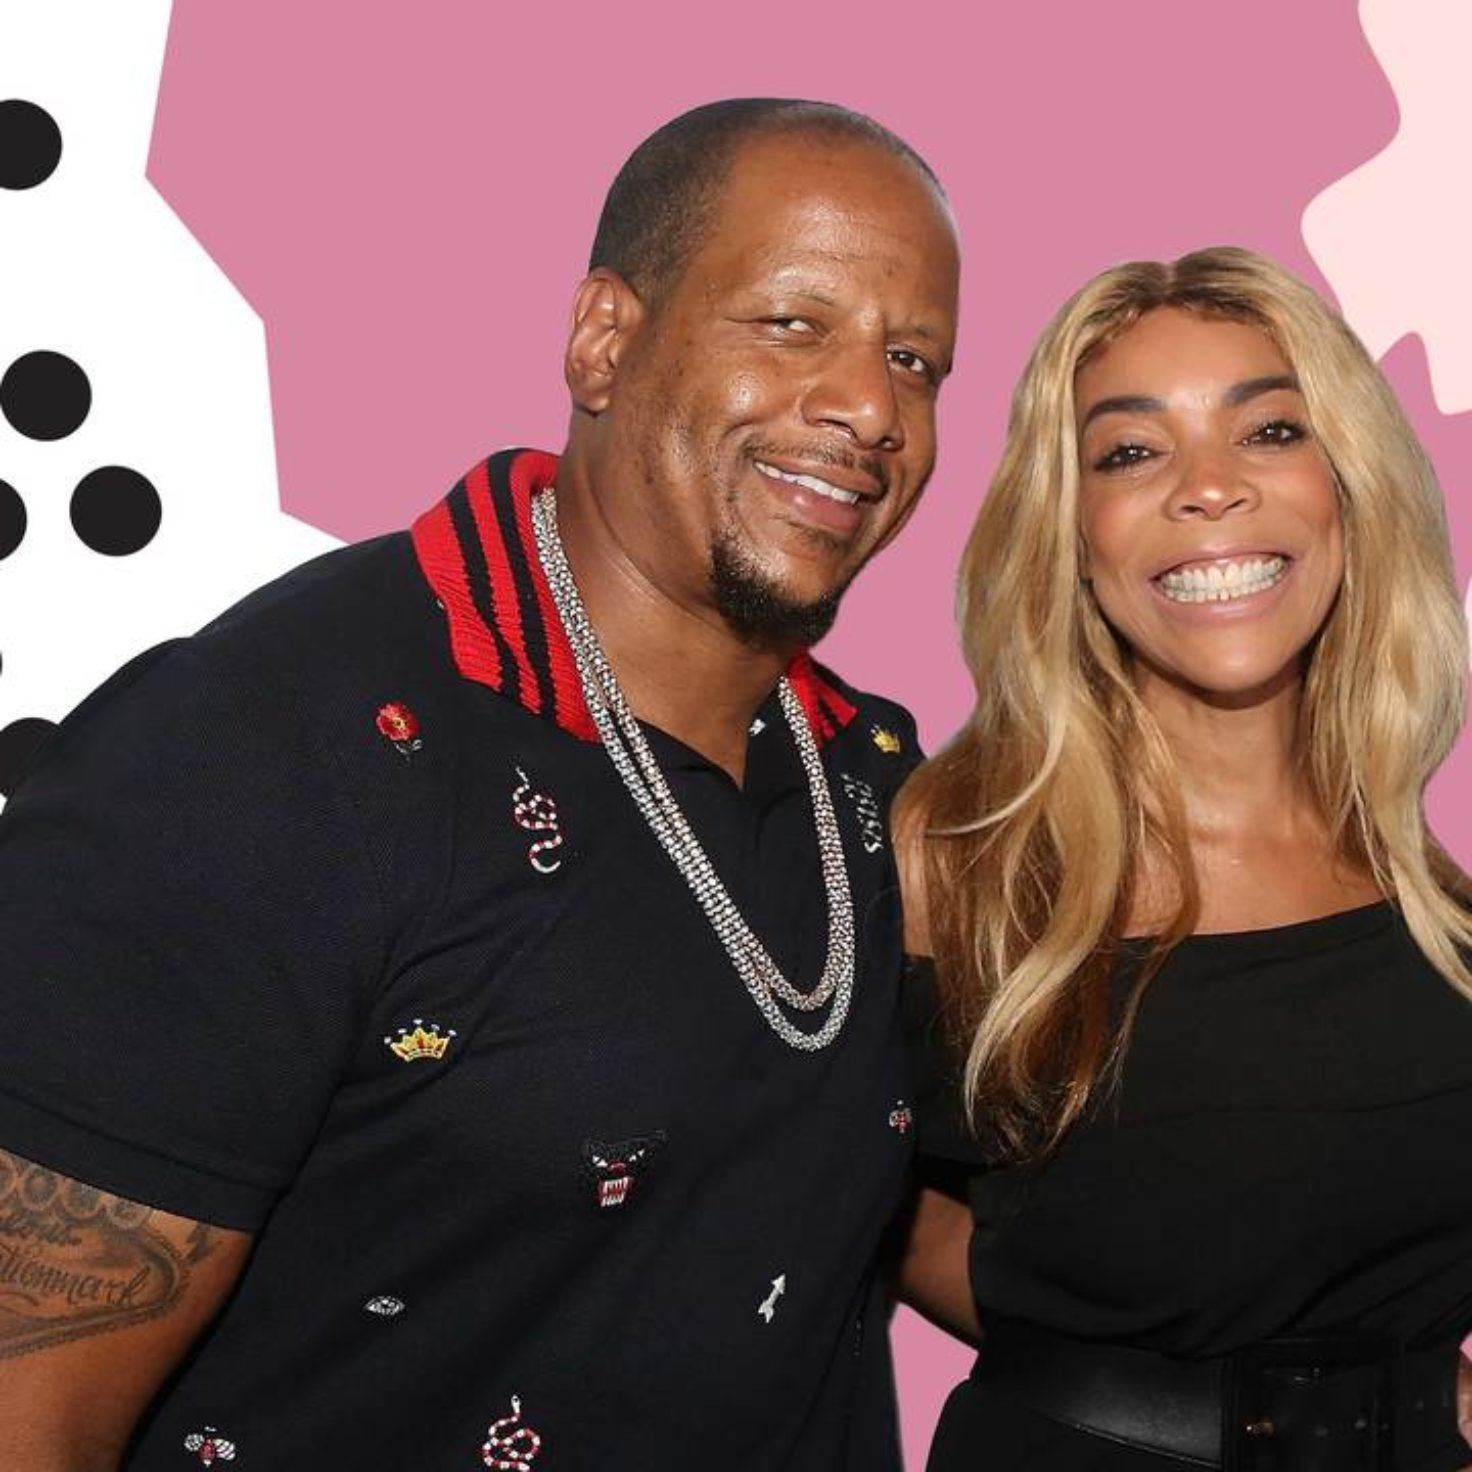 Wendy Williams Responds To Allegations Of Husband's Infidelity: 'Don't Believe The Hype'